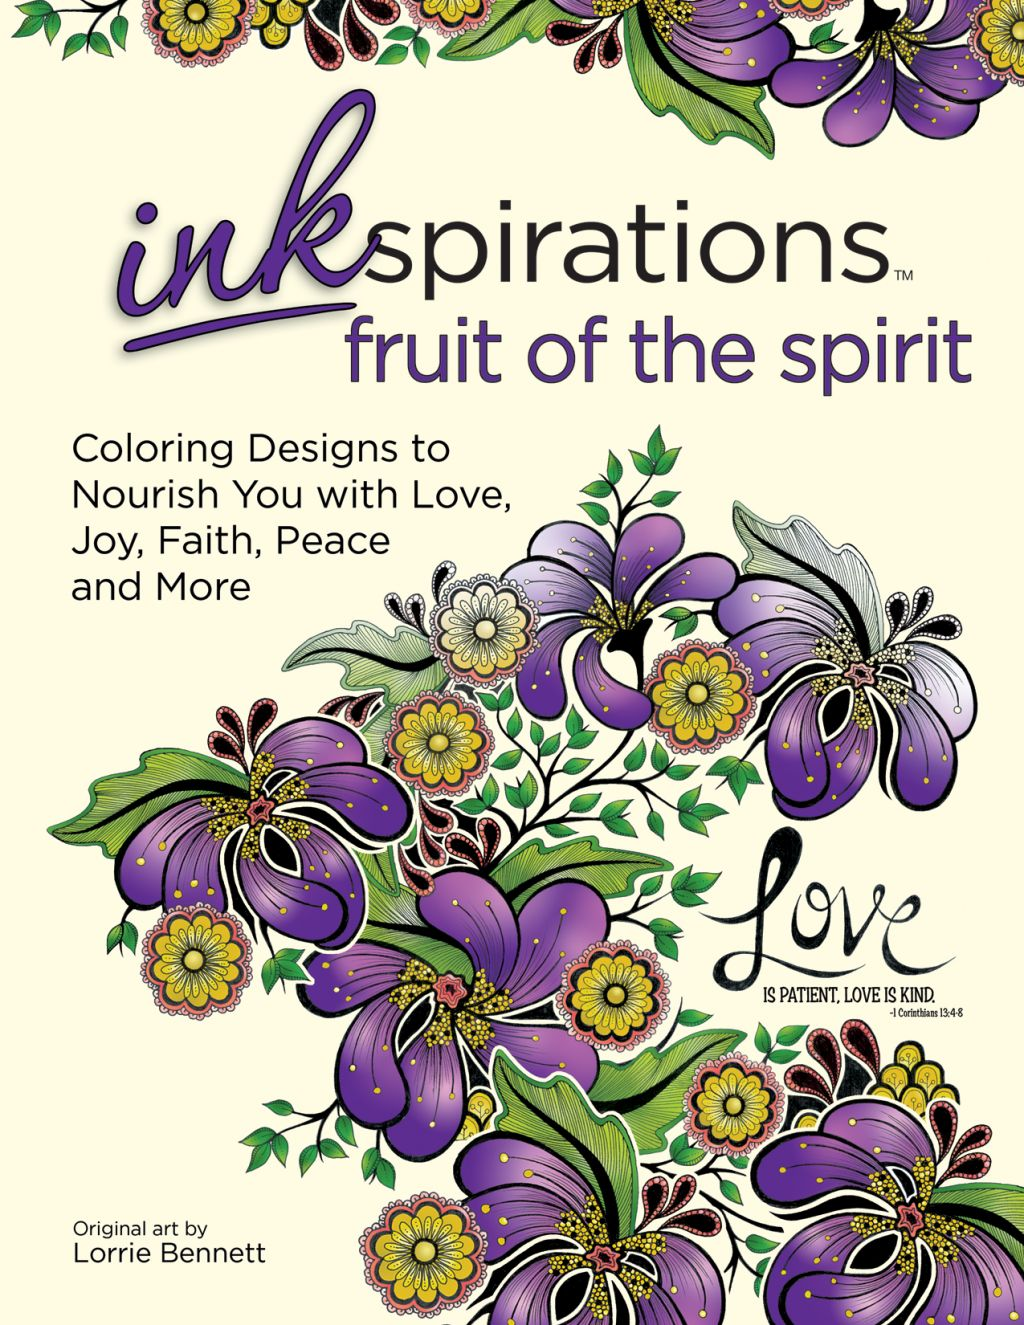 The coloring book tour opener - About Inkspirations Fruit Of The Spirit Coloring Designs To Nourish You With Love Joy Faith Peace And More